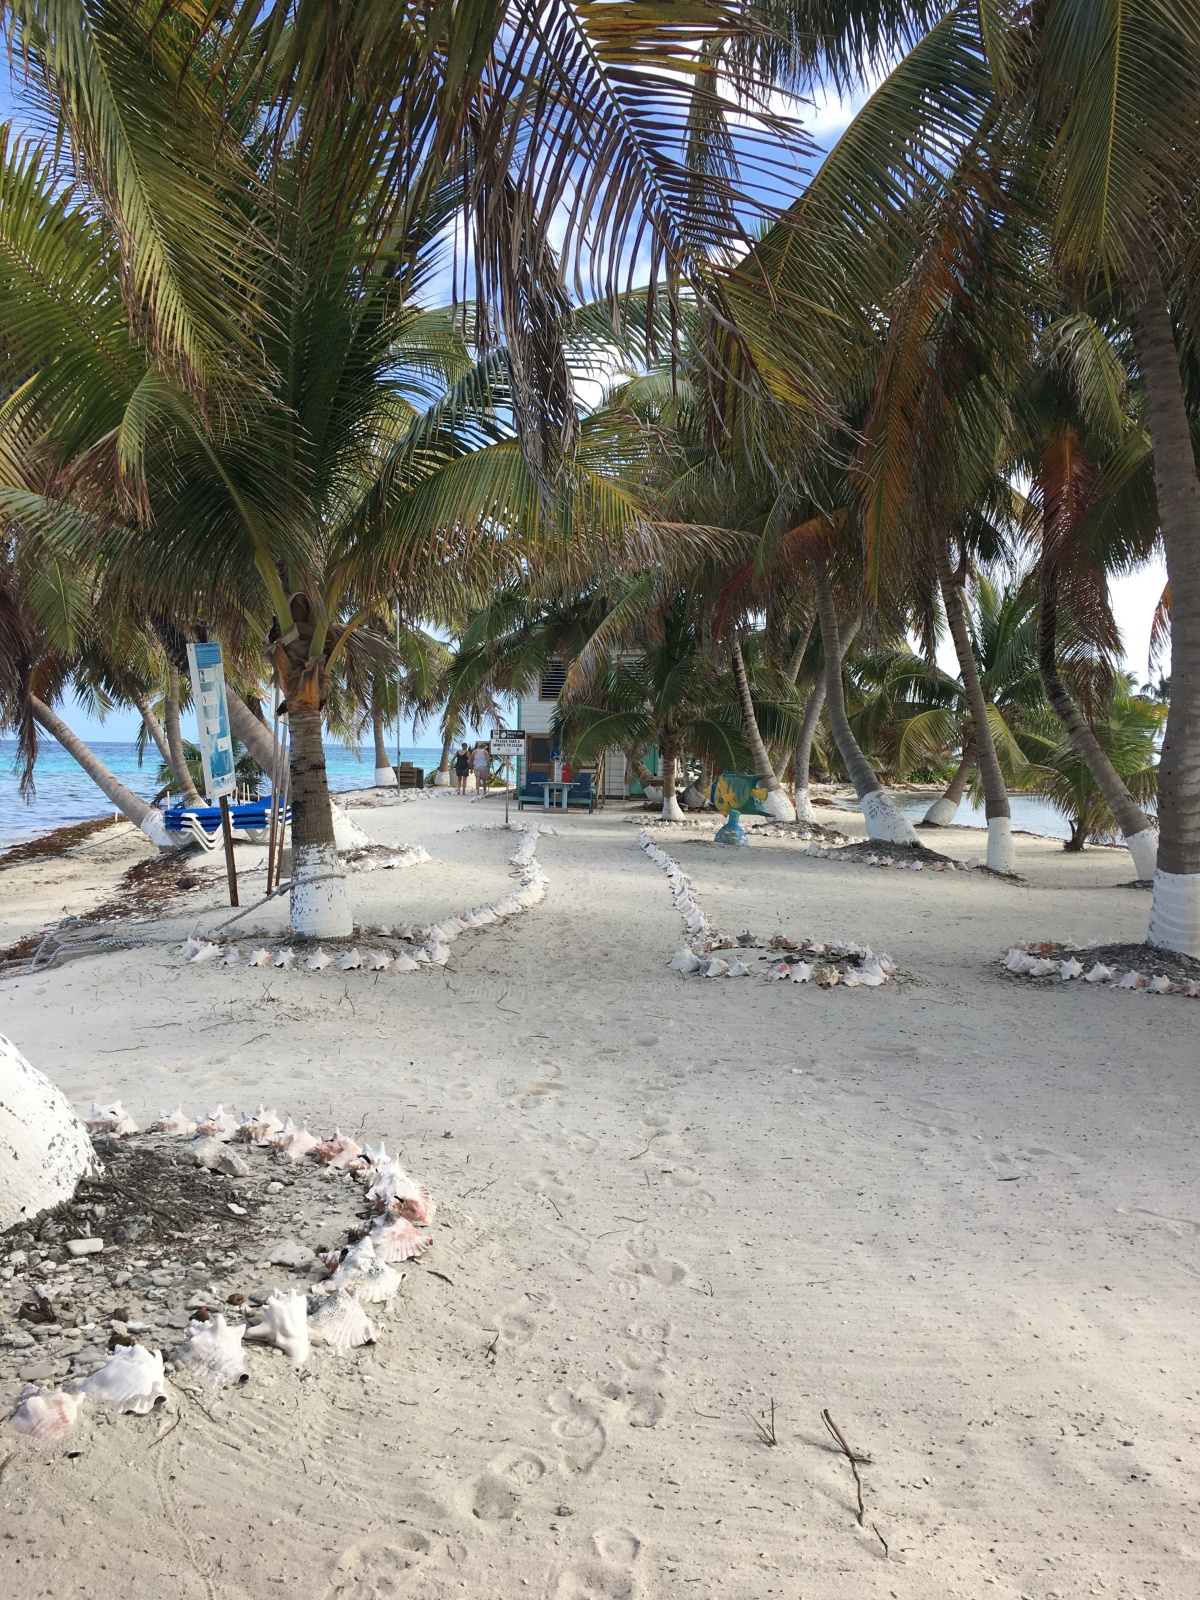 Snorkeling at Laughing Bird Caye. See our travel guide to 5 Days in Placencia, Belize at Turtle Inn